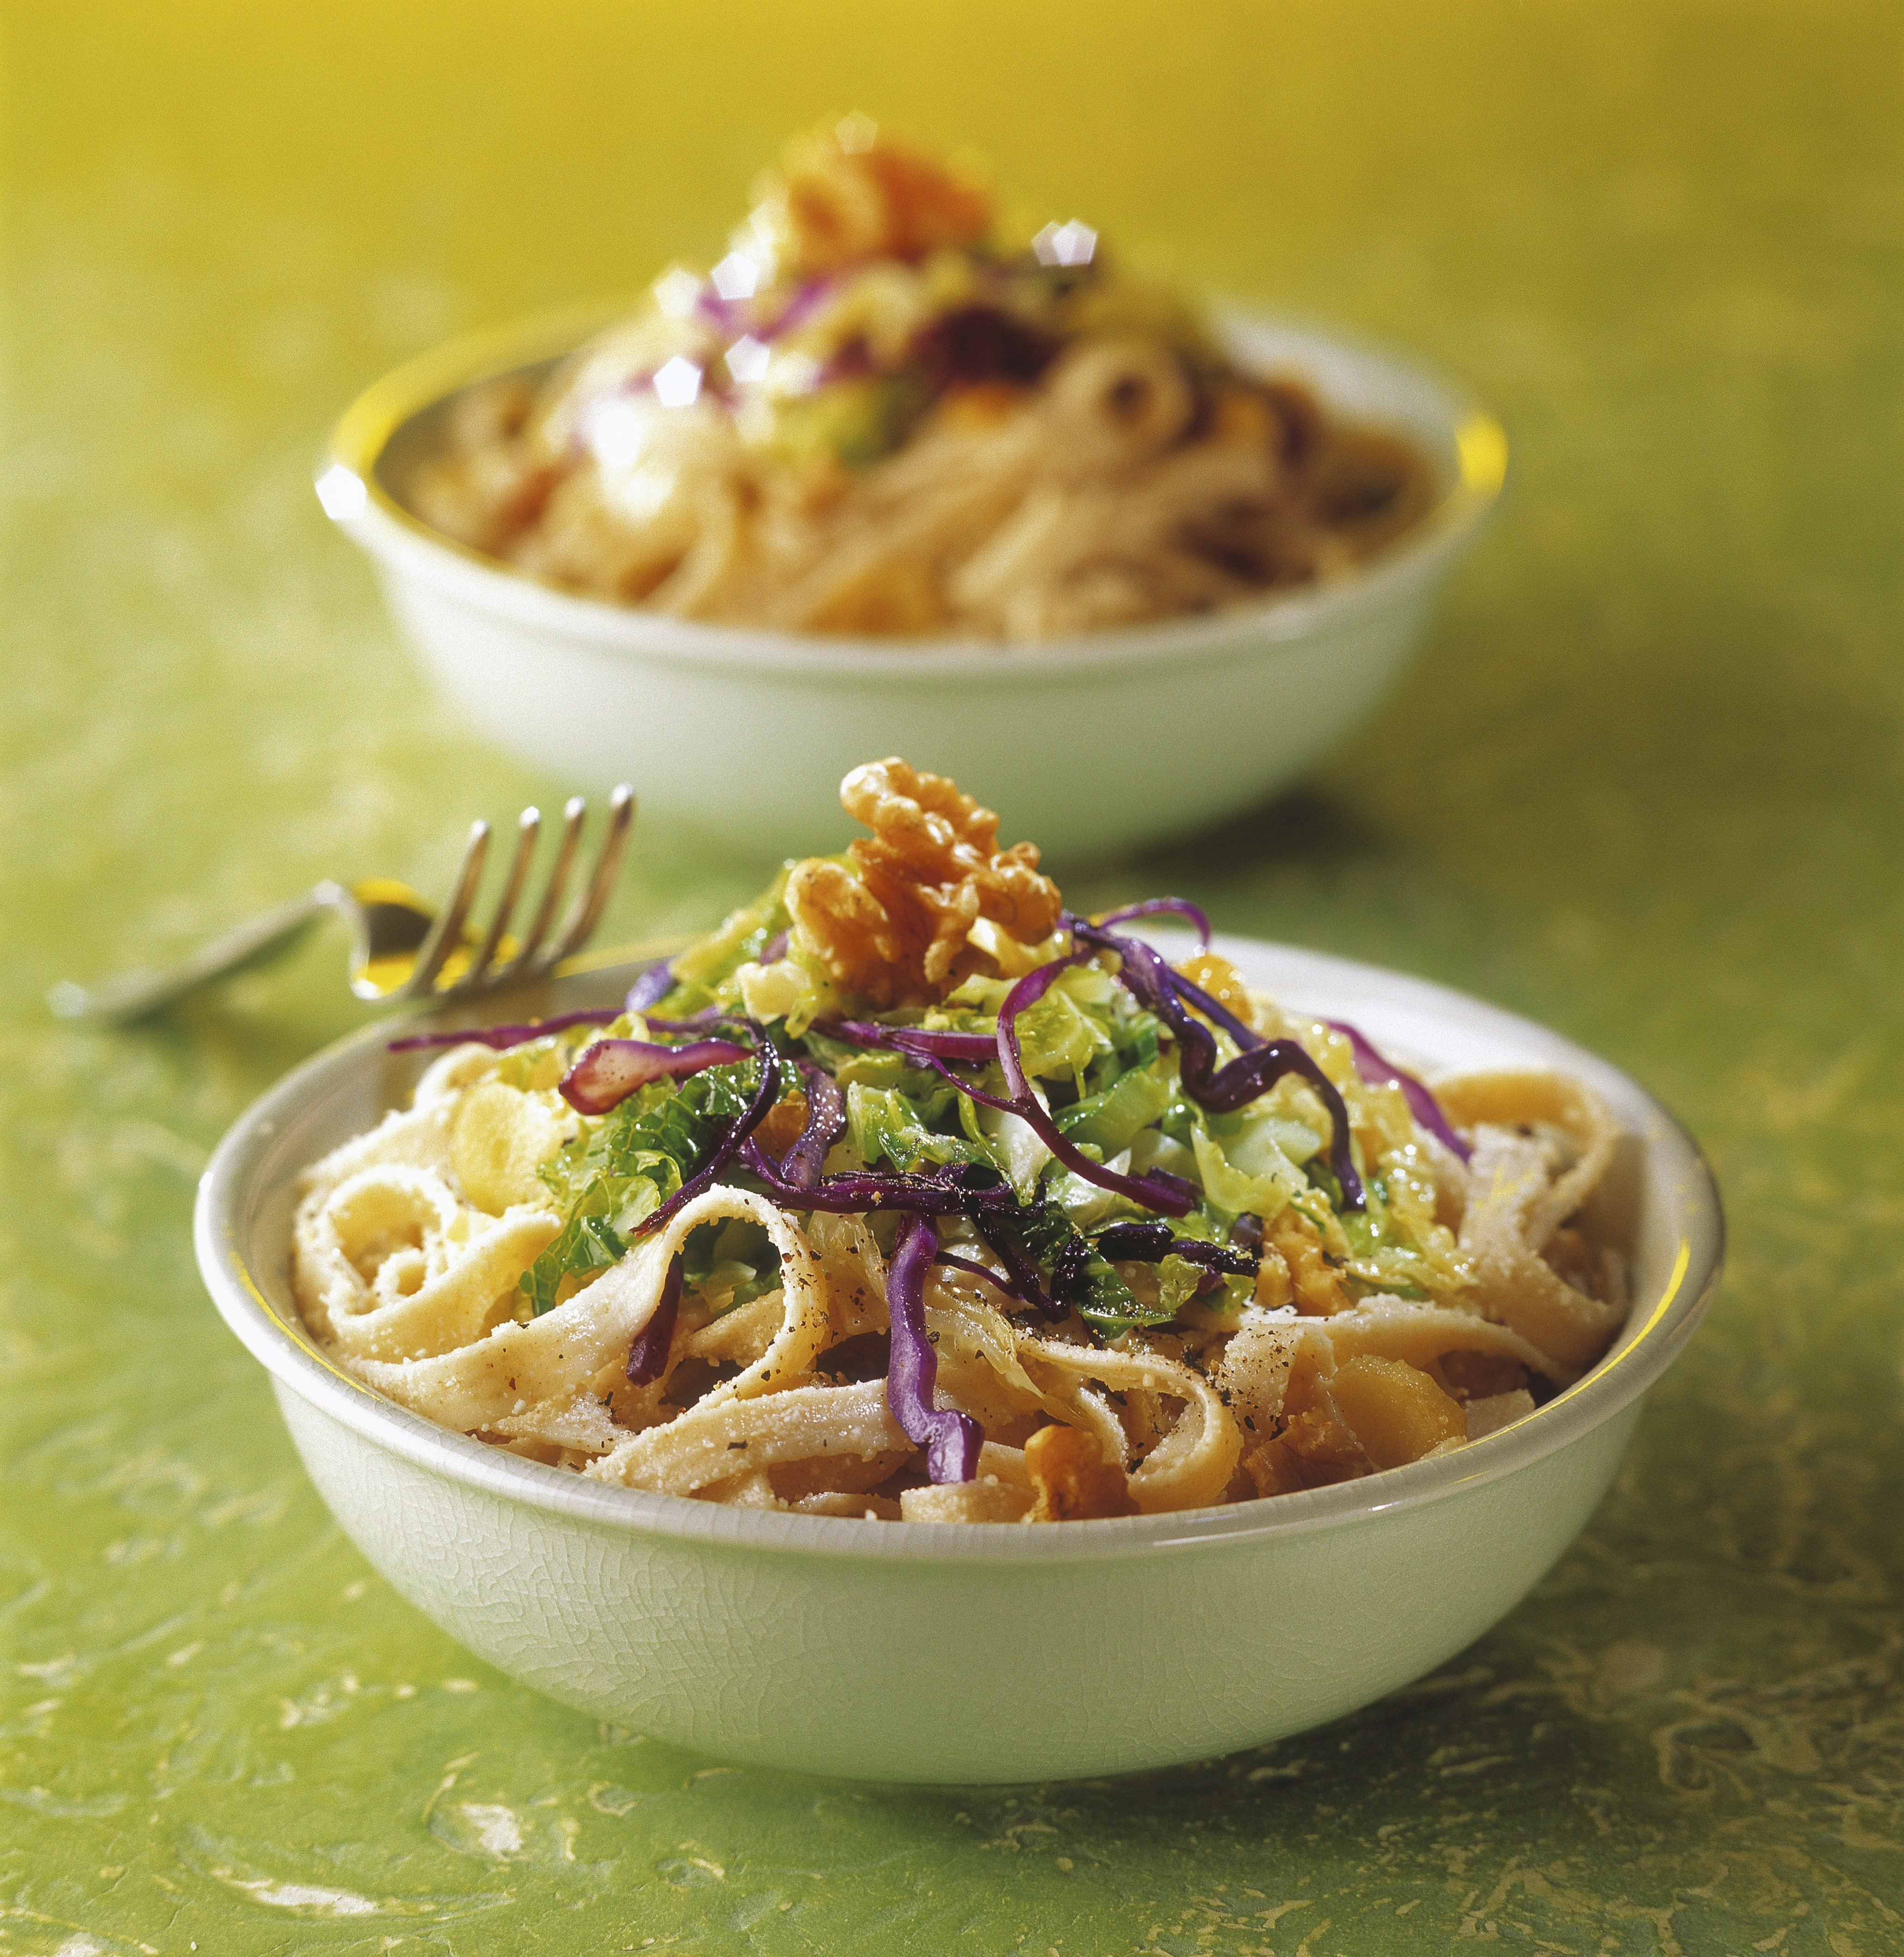 Tagliatelle with vegetables and walnuts